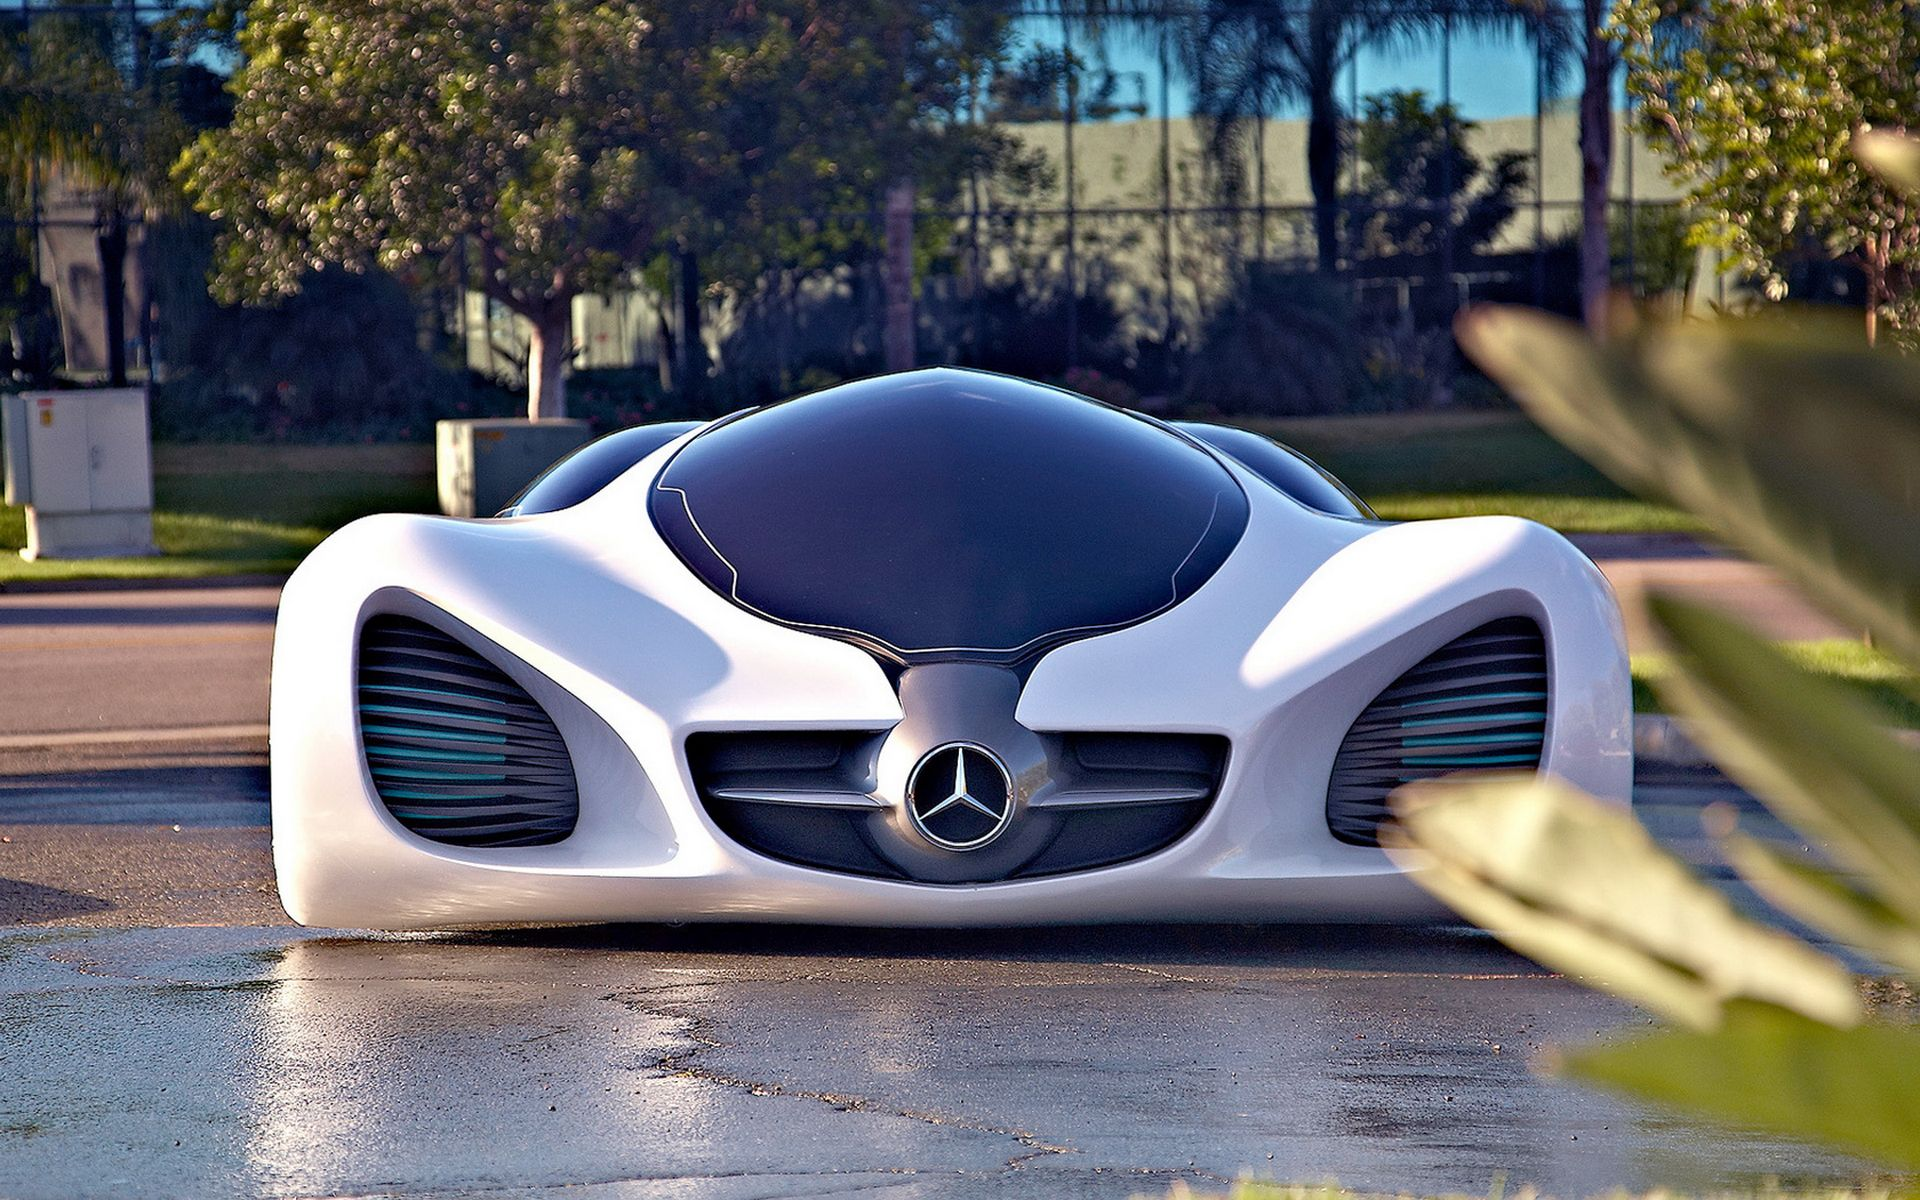 2010 mercedes benz biome concept future has arrived at the 2010 los angeles design challenge the designers from the mercedes benz advanced design stu